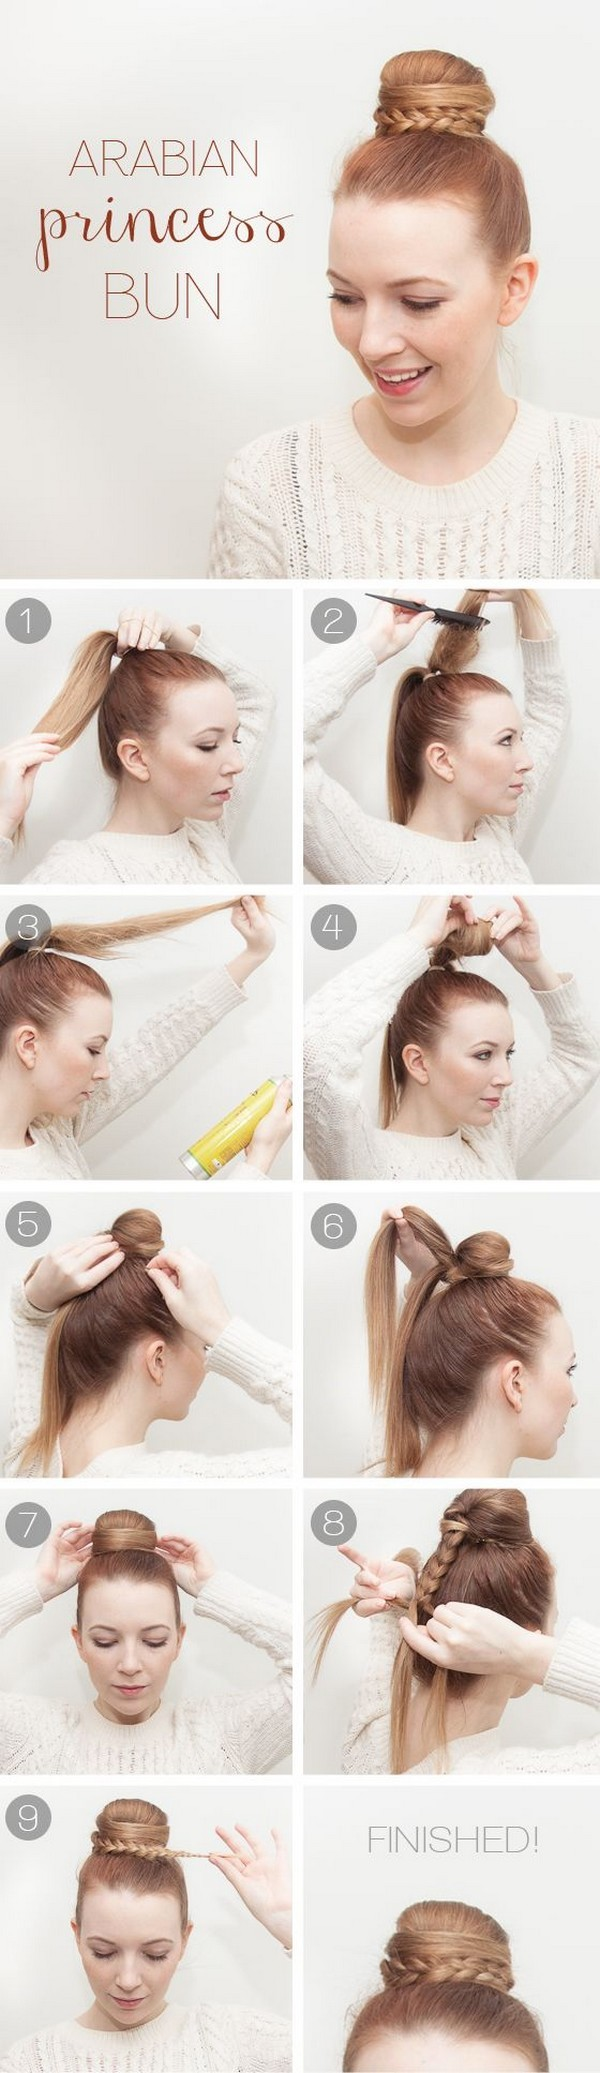 Arabian princess bun hairstyle tutorial & Hairstyles For College ...